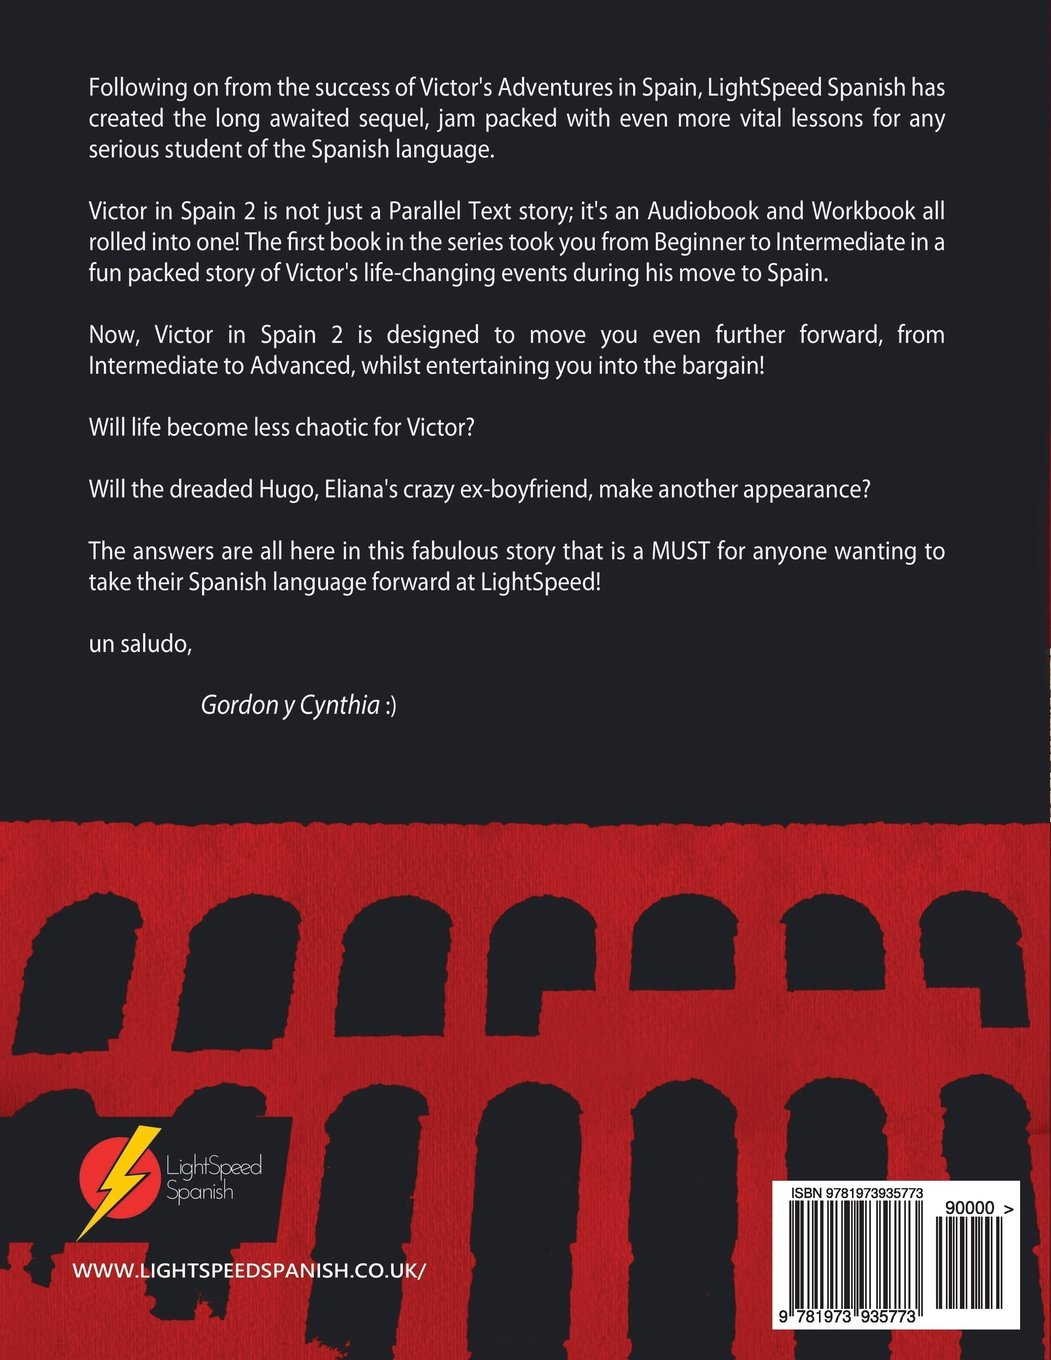 VIctoru0027s Adventures In Spain 2: The Adventure Continues: Volume 2:  Amazon.co.uk: Mr Gordon Smith Duran, Mrs Cynthia Smith Duran:  9781973935773: Books